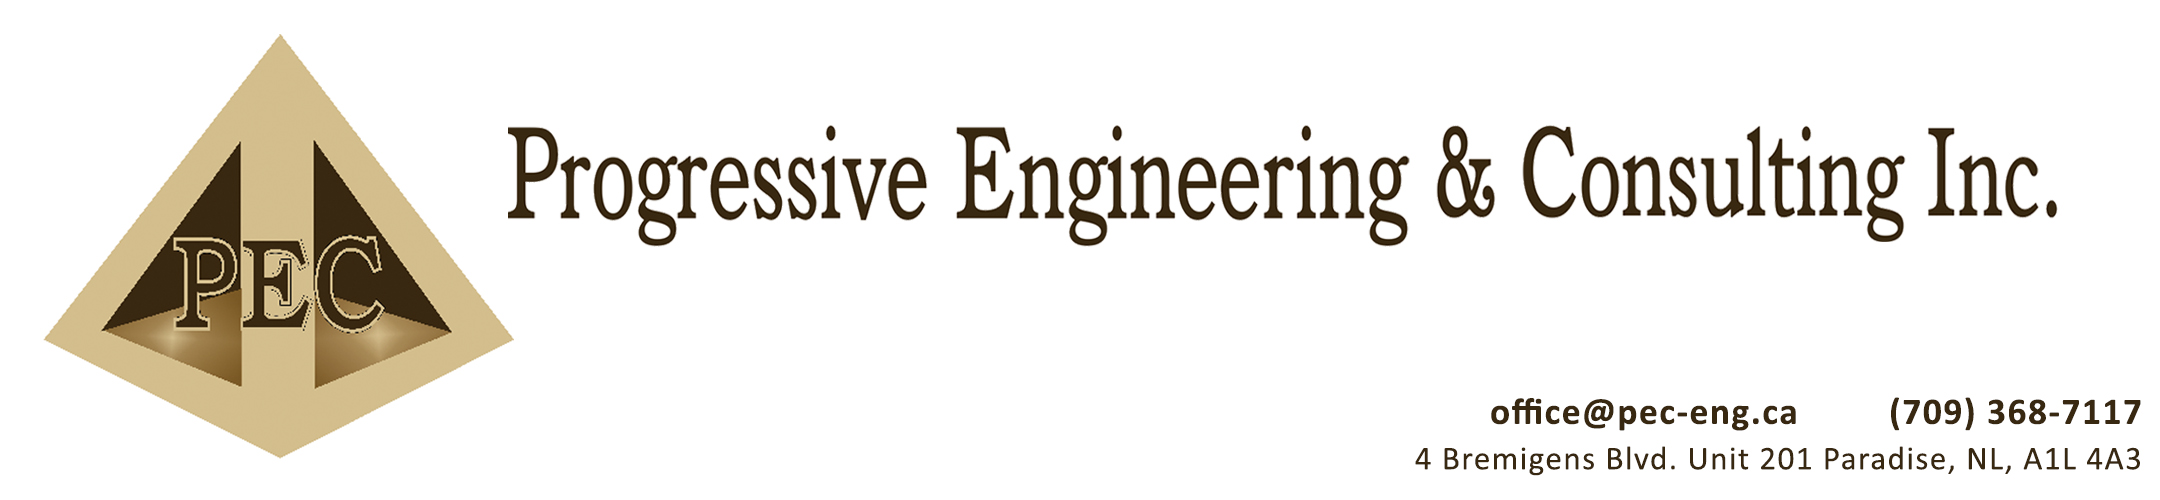 Progressive Engineering & Consulting Inc.